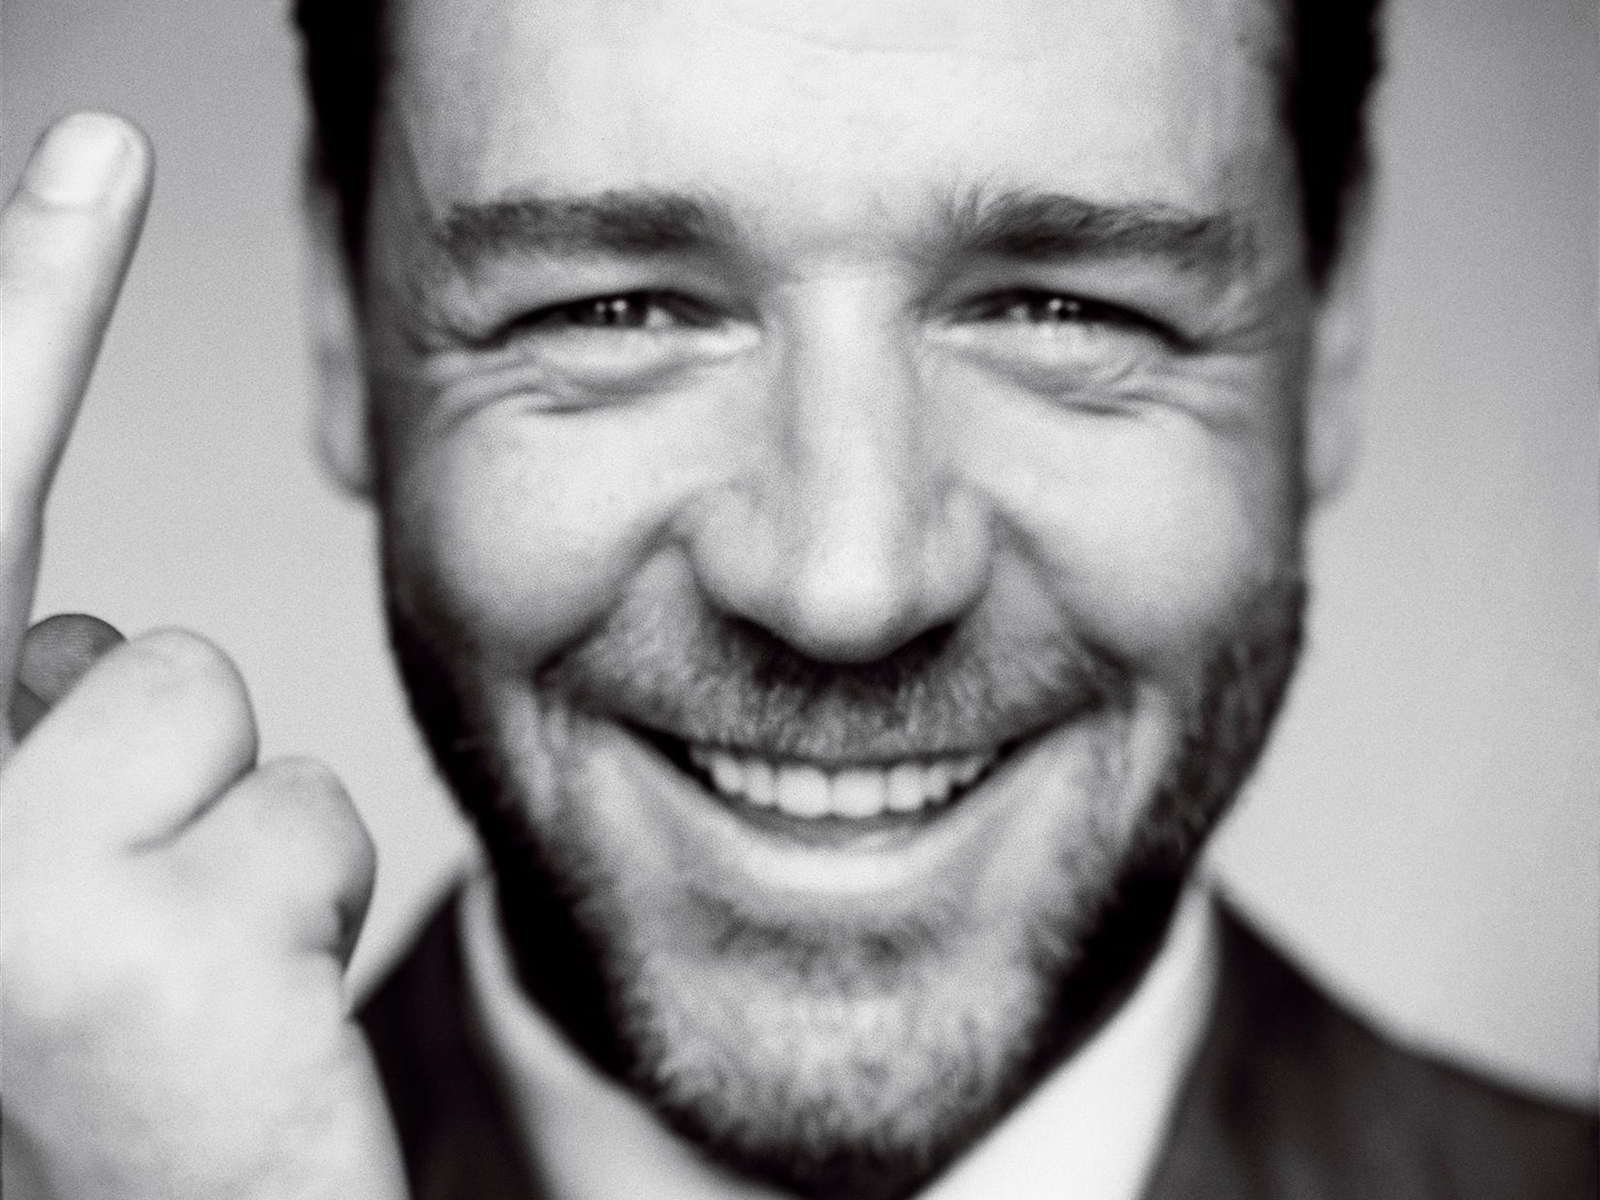 1600x1200 - Russell Crowe Wallpapers 3